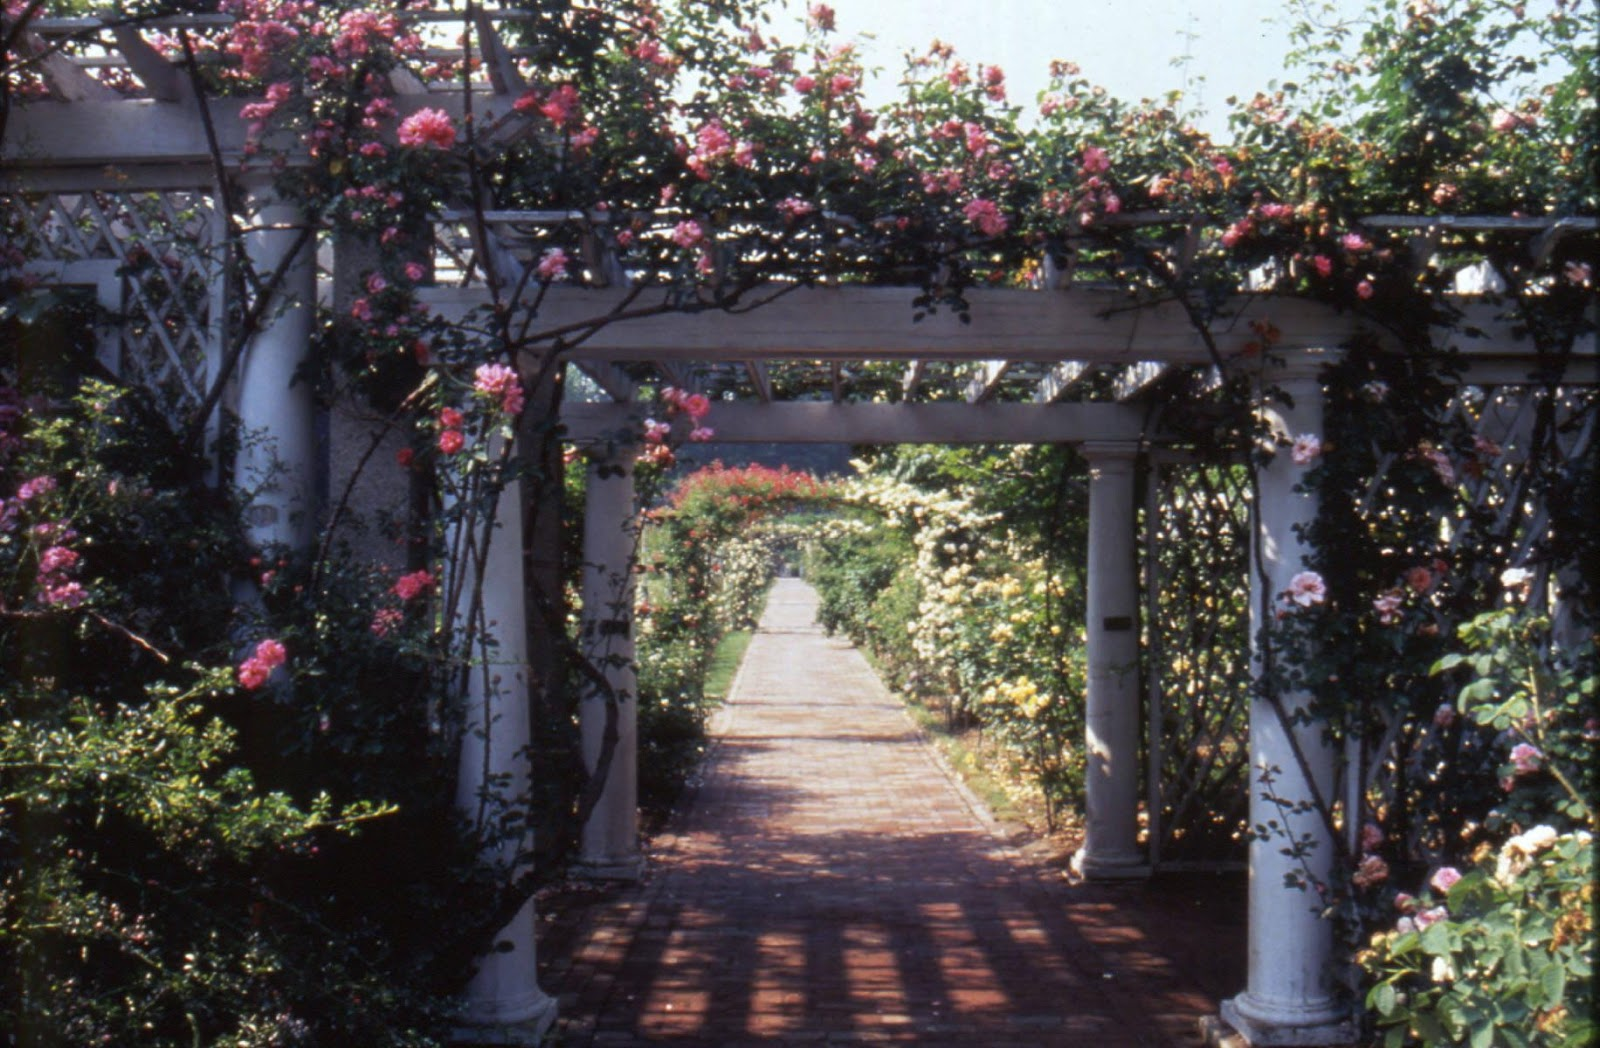 The Cranford Rose Garden